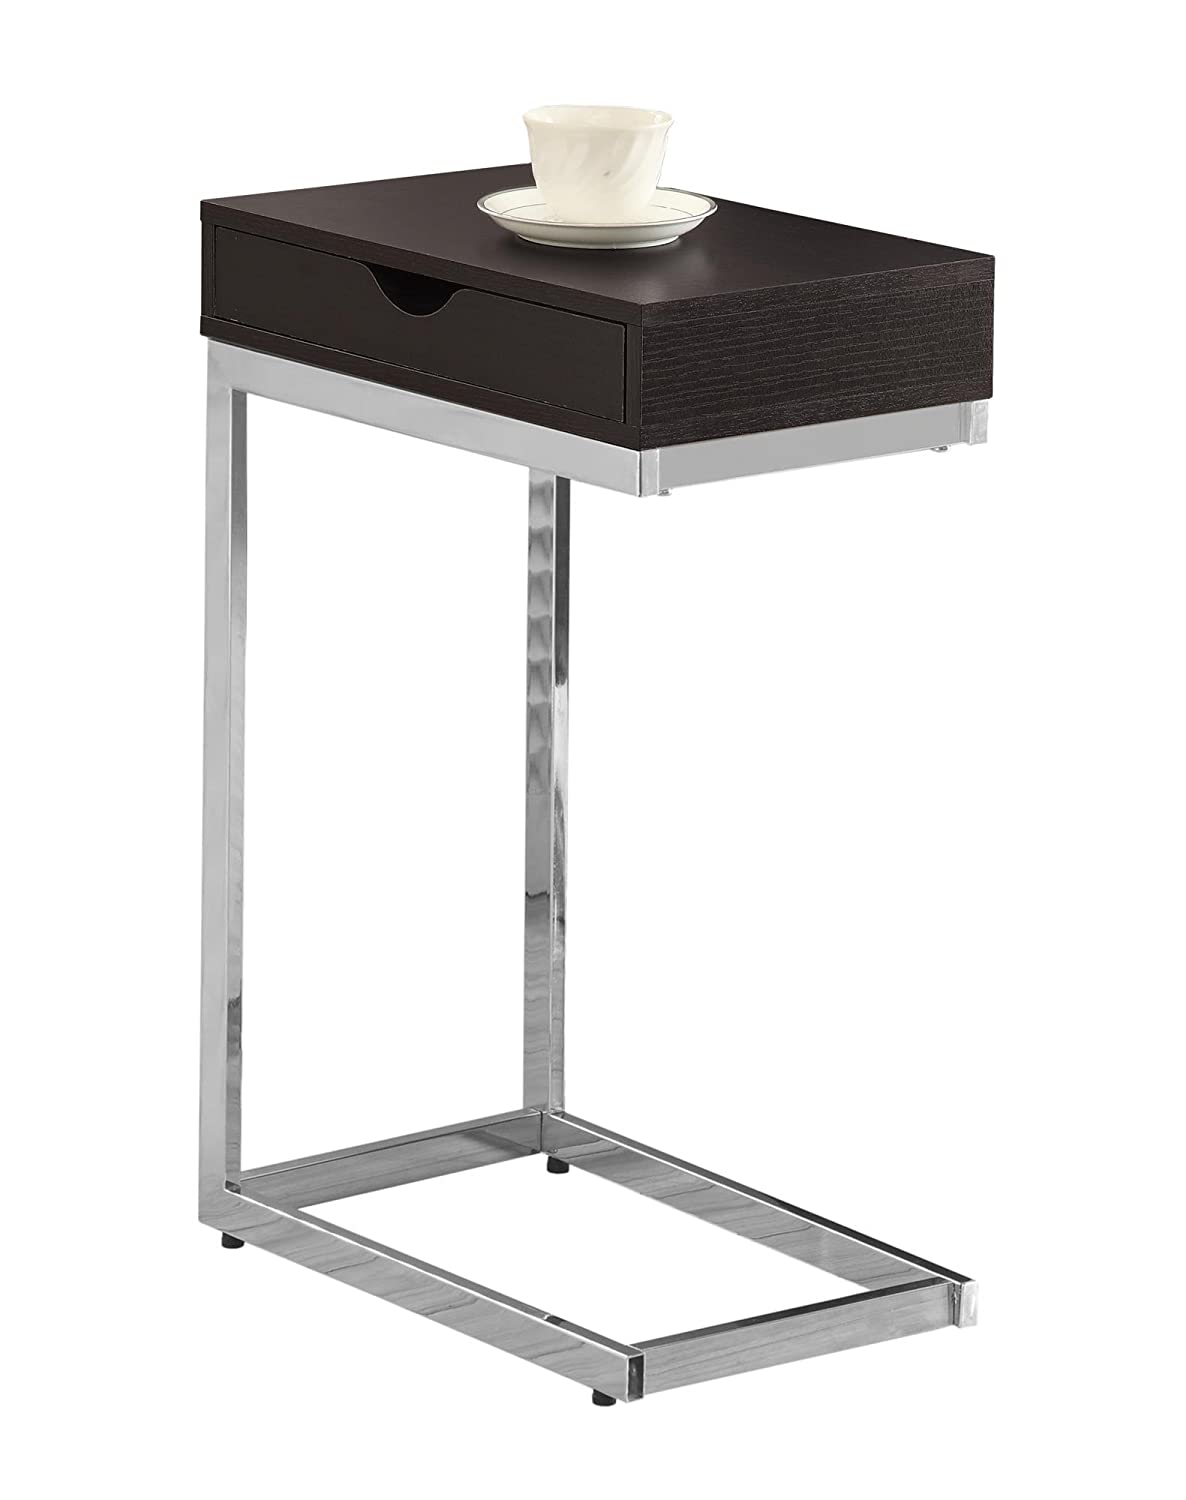 Attirant Amazon.com: Monarch Specialties I 3031, Accent Table With A Drawer , Chrome  Metal, Cappuccino: Kitchen U0026 Dining